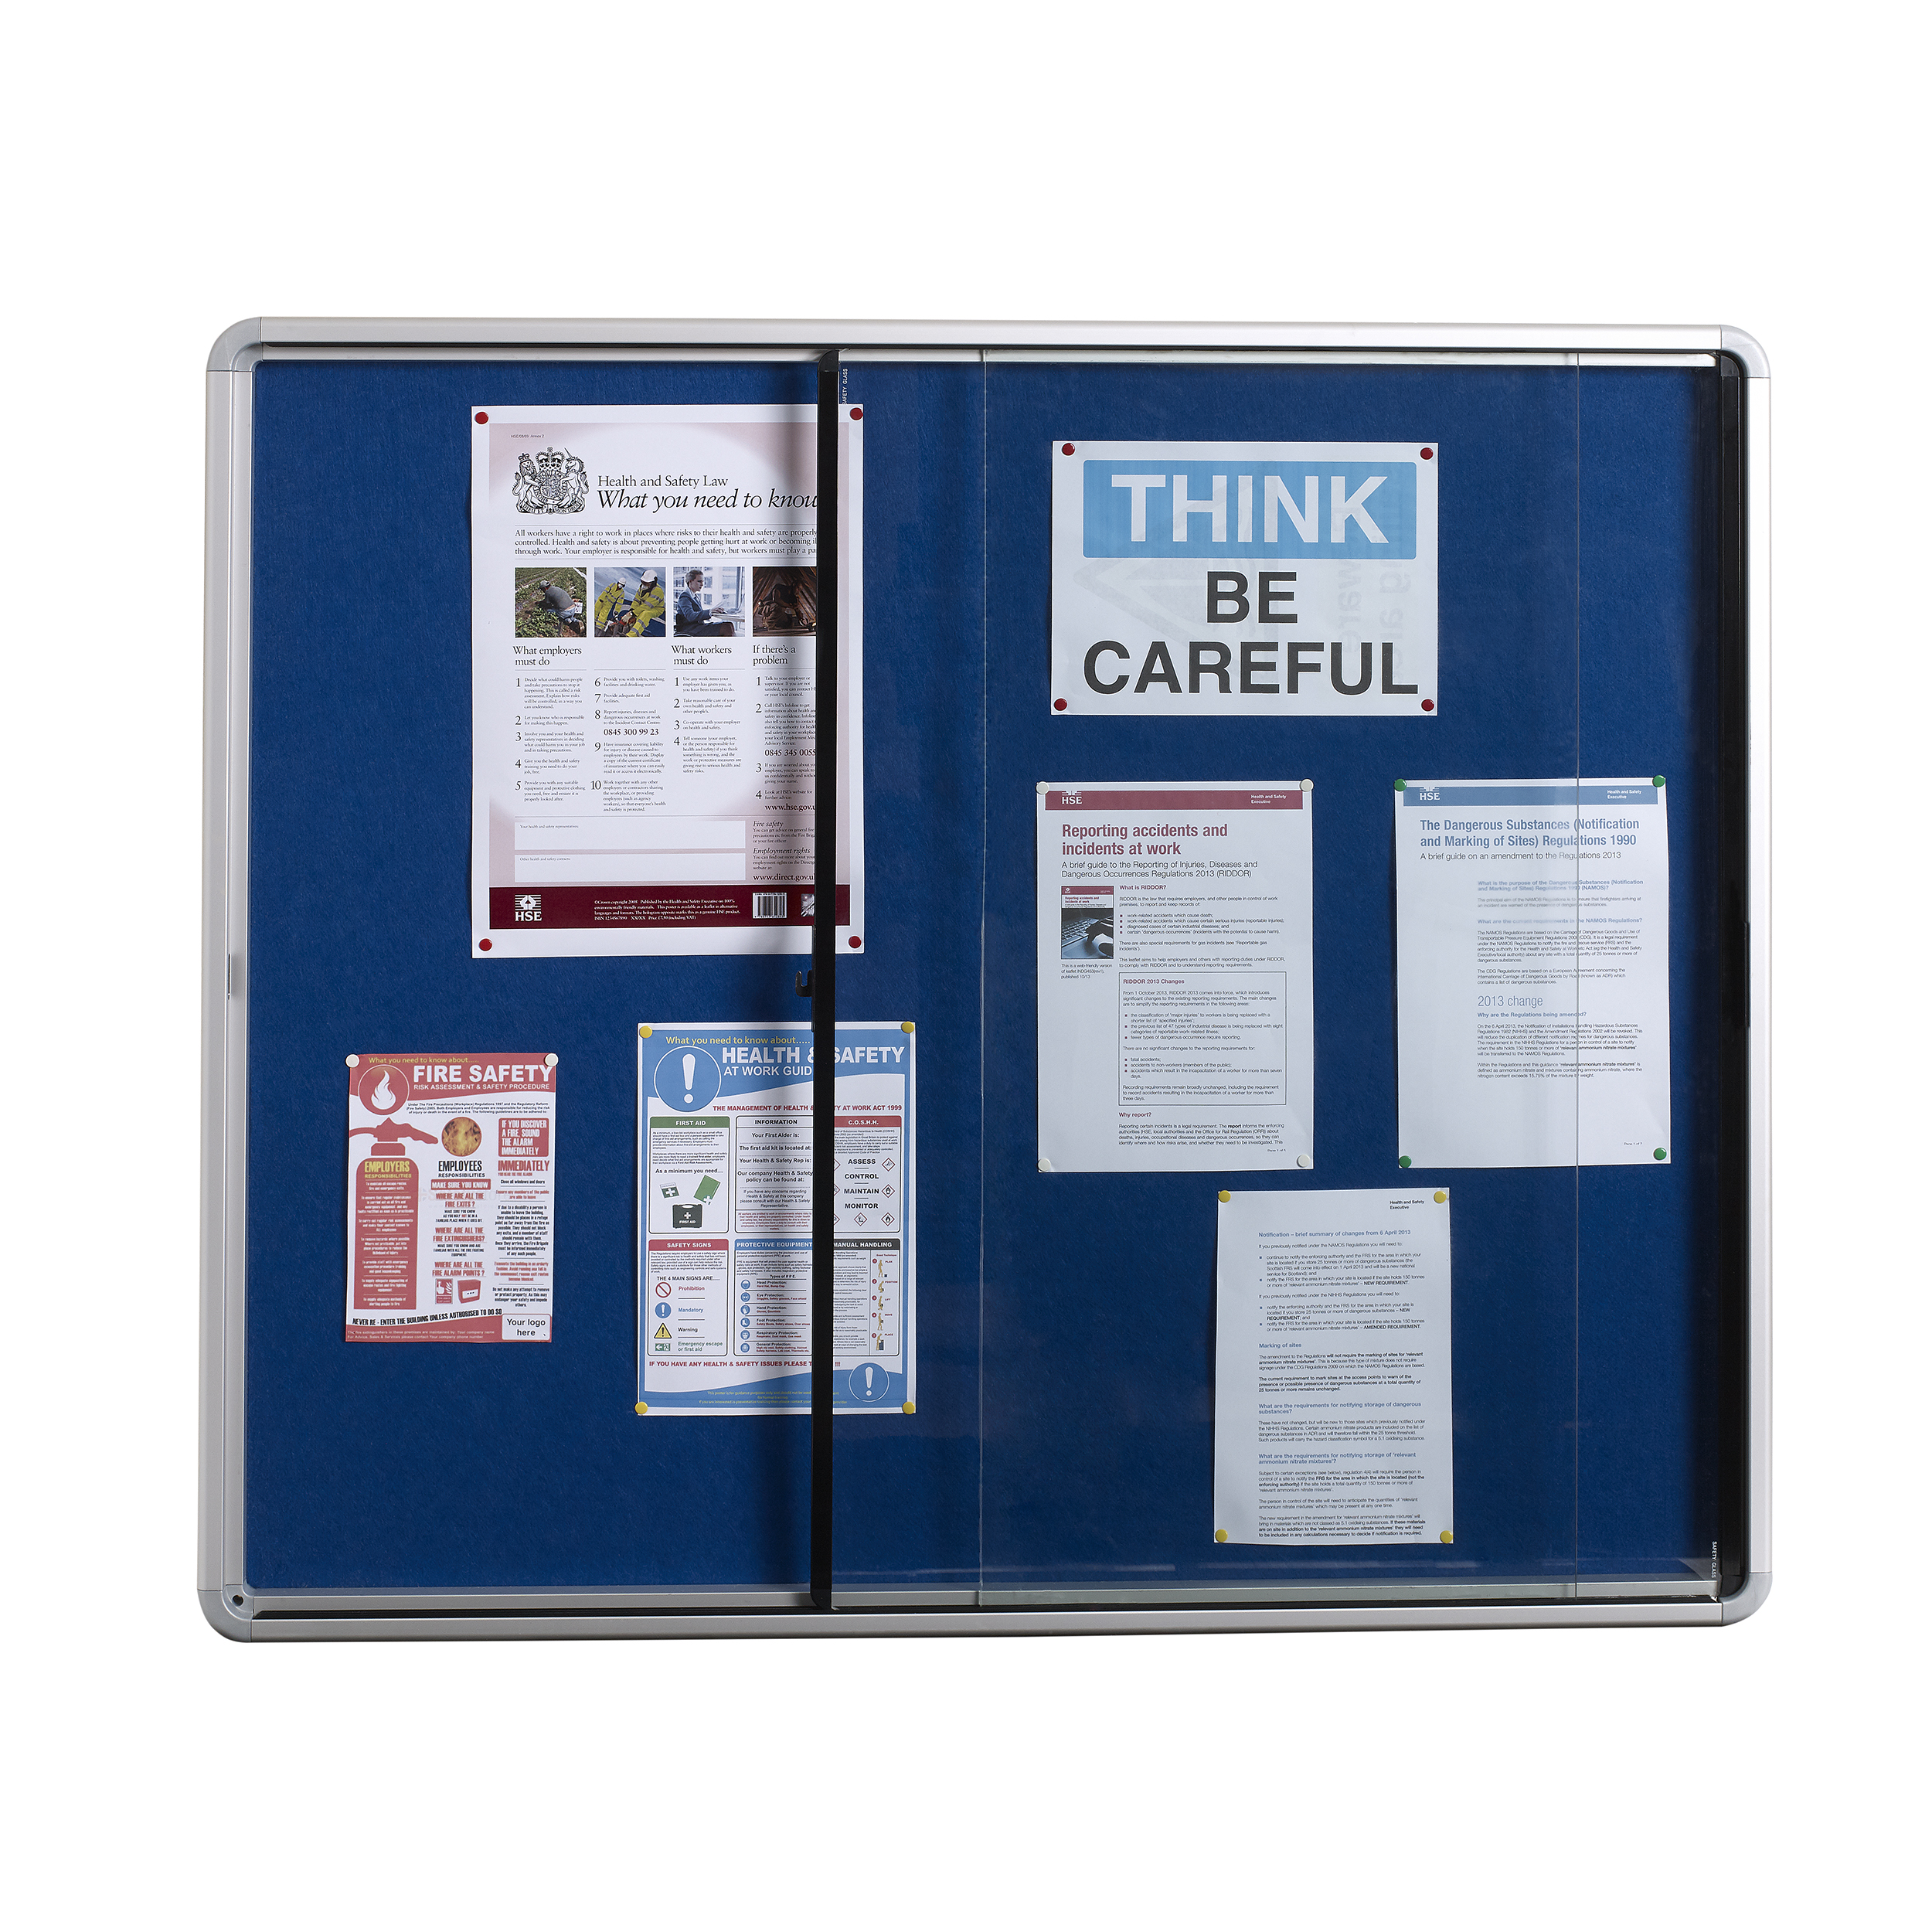 Display cases 5 Star Glazed Noticeboard with sliding Door Locking Alumin Frame Blue Felt 900x1200mm